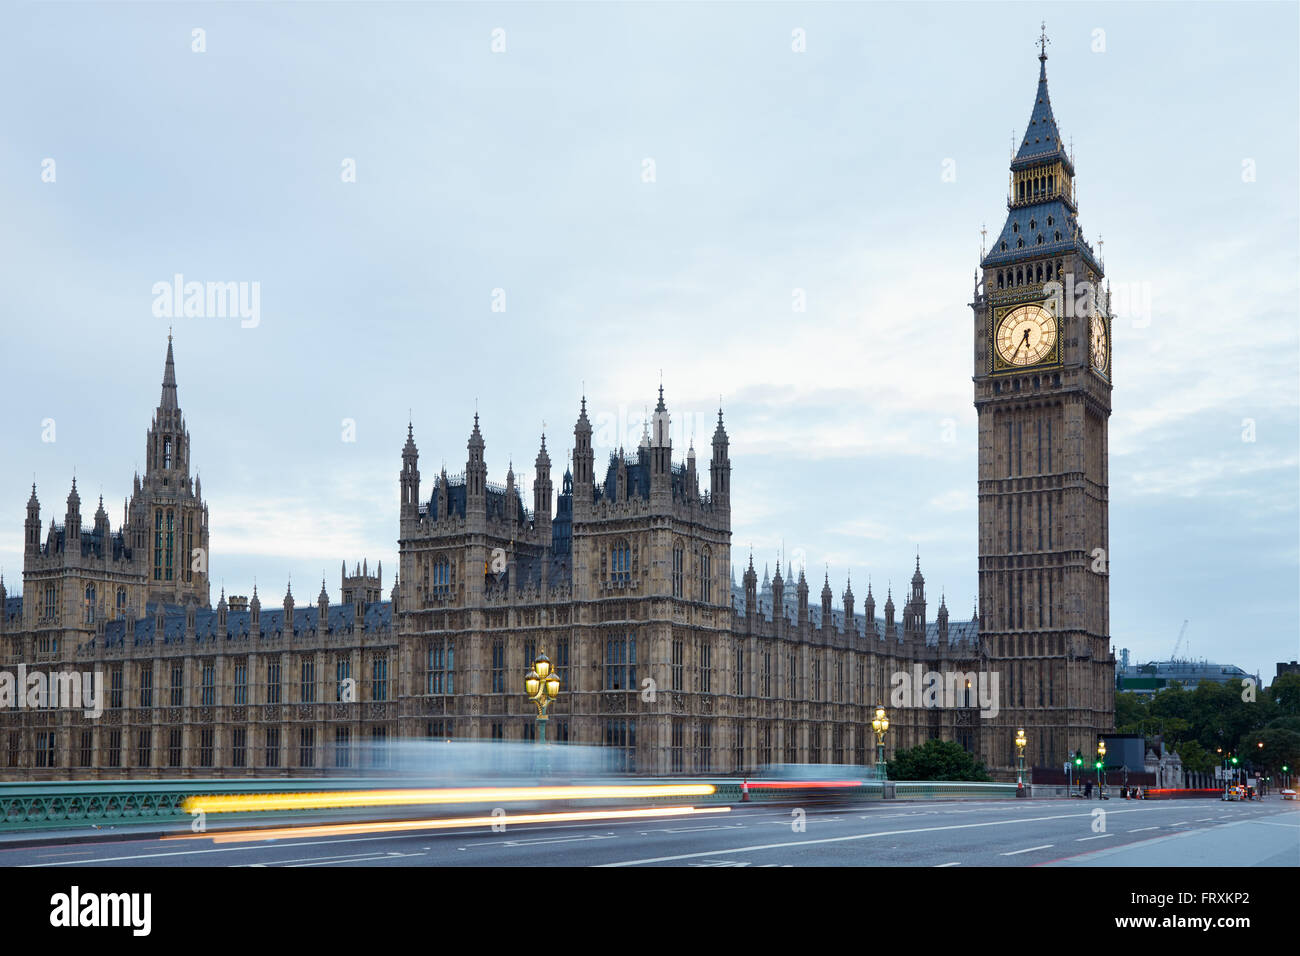 Big Ben and bridge in the early morning, car passing lights in London - Stock Image